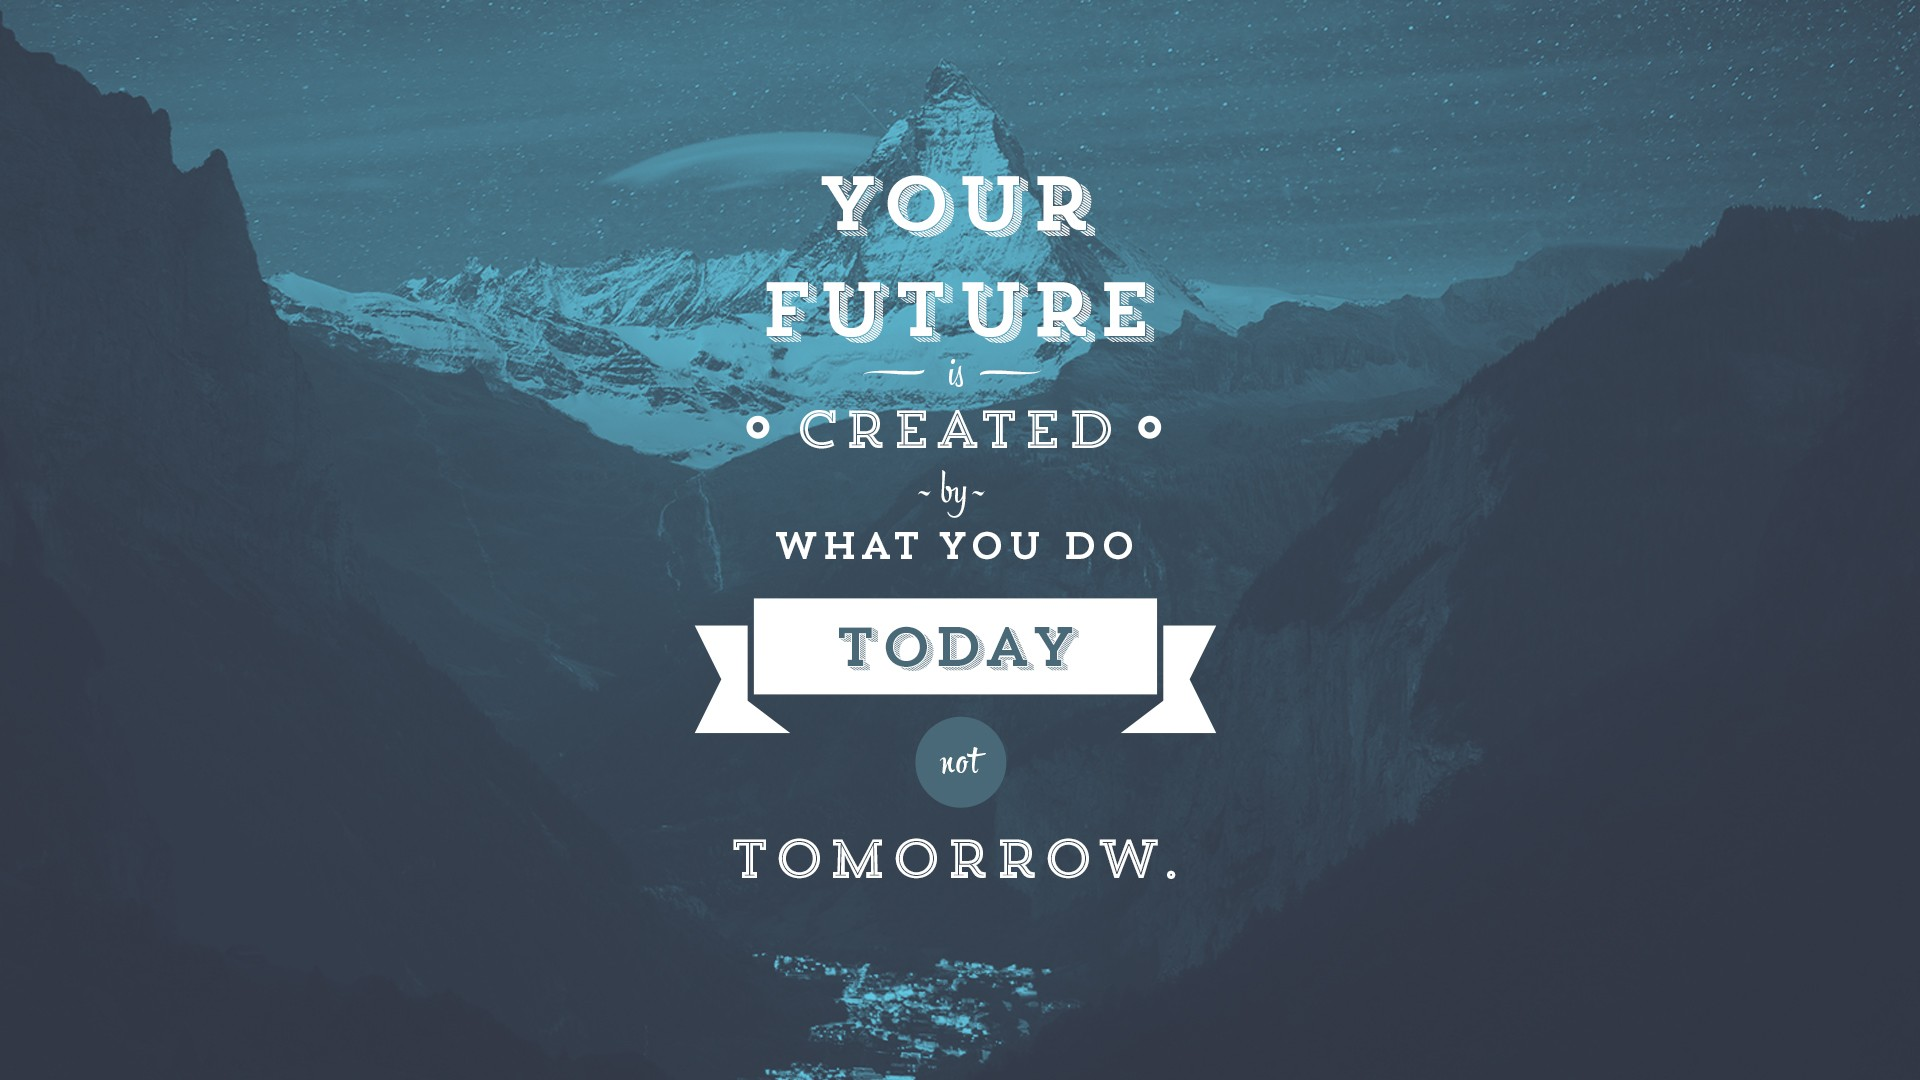 Motivational Wallpaper on Future Your future is created by what you 1920x1080